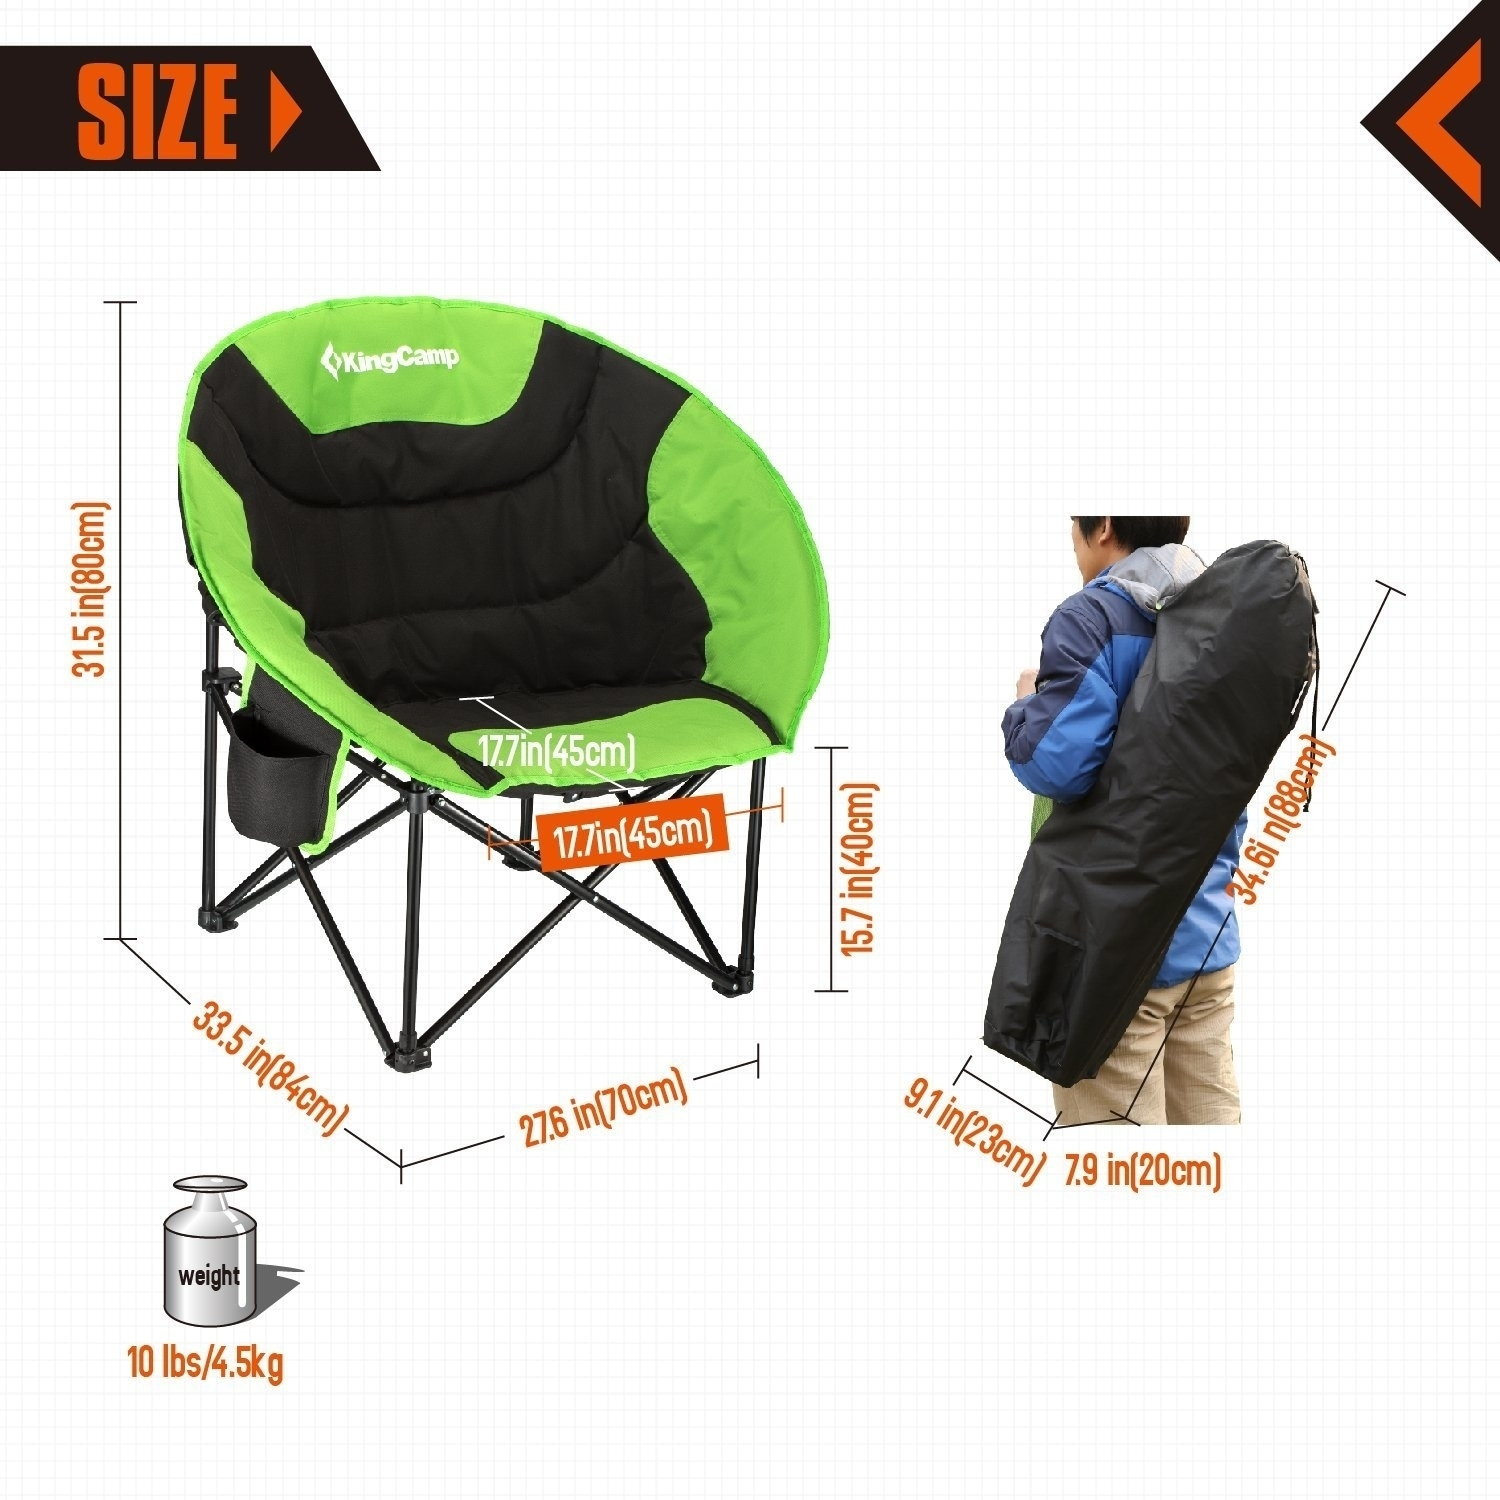 Shop KingCamp Moon Saucer Camping Chair   Carry Bag   Free Shipping Today    Overstock.com   20657762